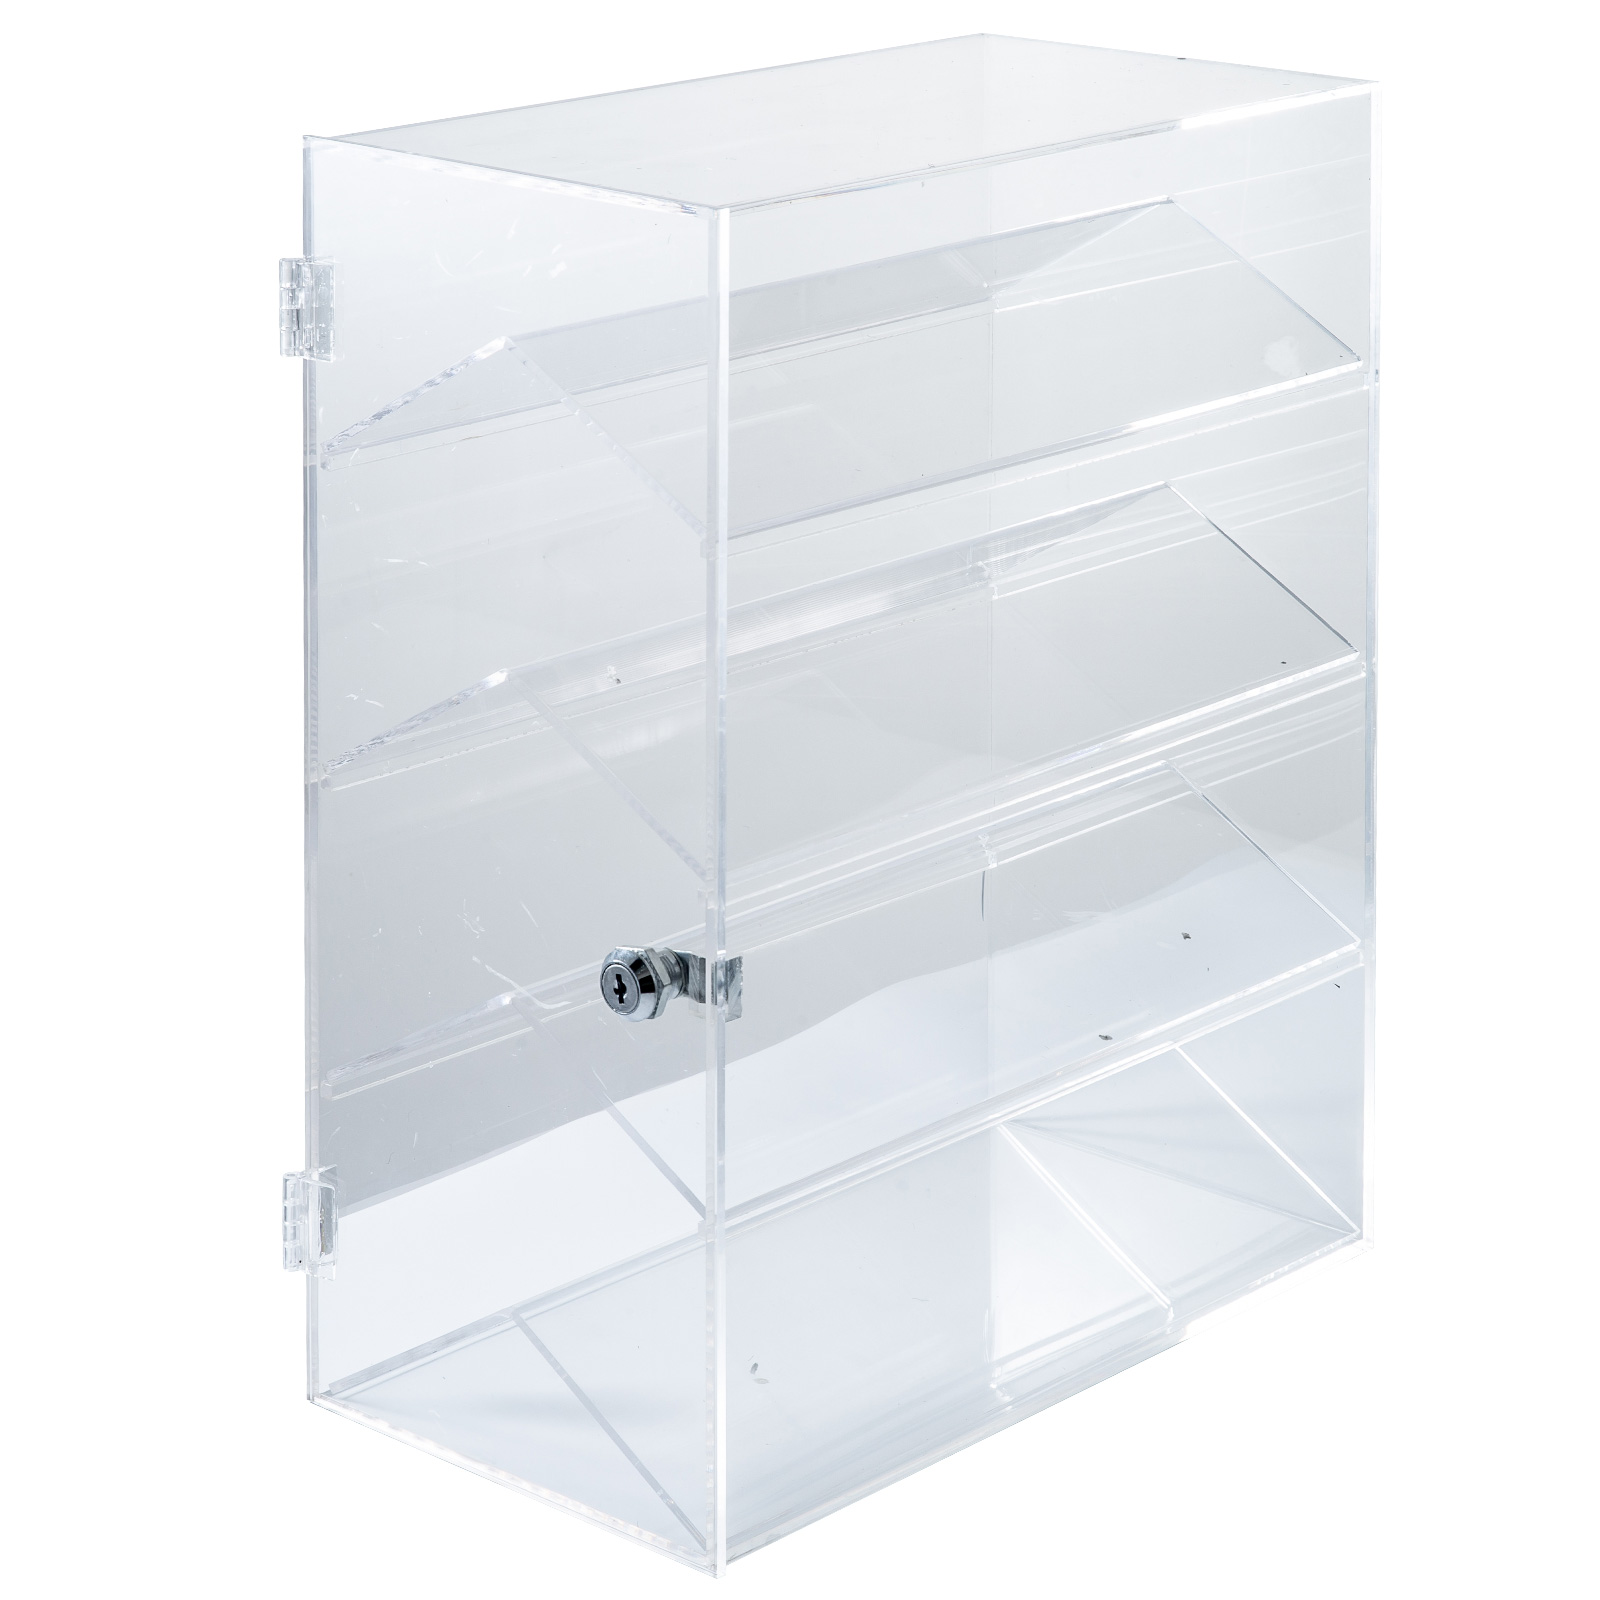 thumbnail 142 - 2-3-4-Shelves-Acrylic-Display-Cabinet-Glued-Unassembled-Bakery-Clear-Pastry